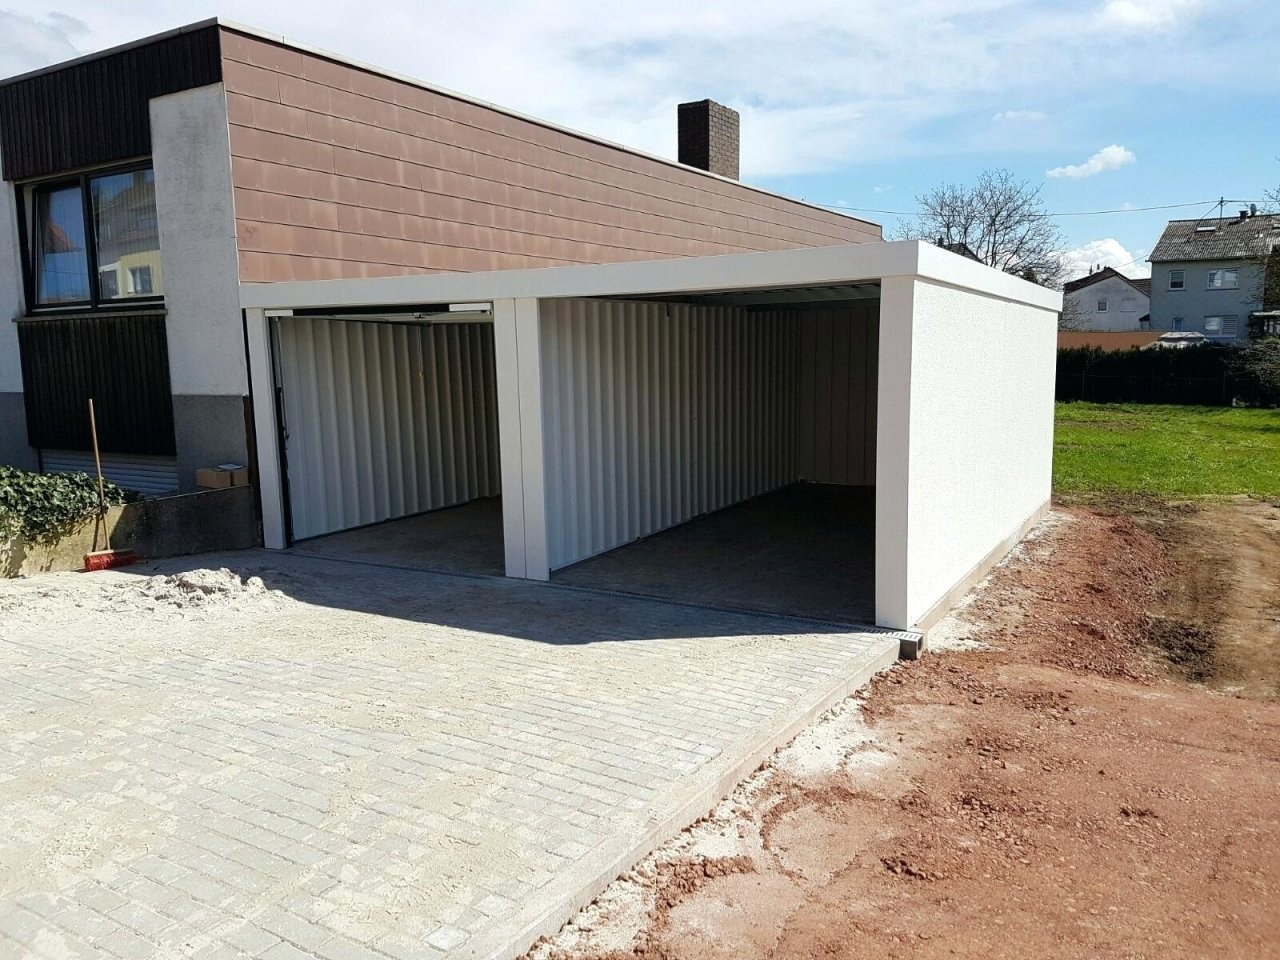 Carport Bouwen Kosten Carport With Carport Bouwen Kosten Finest von Baukosten Pro M3 2015 Photo